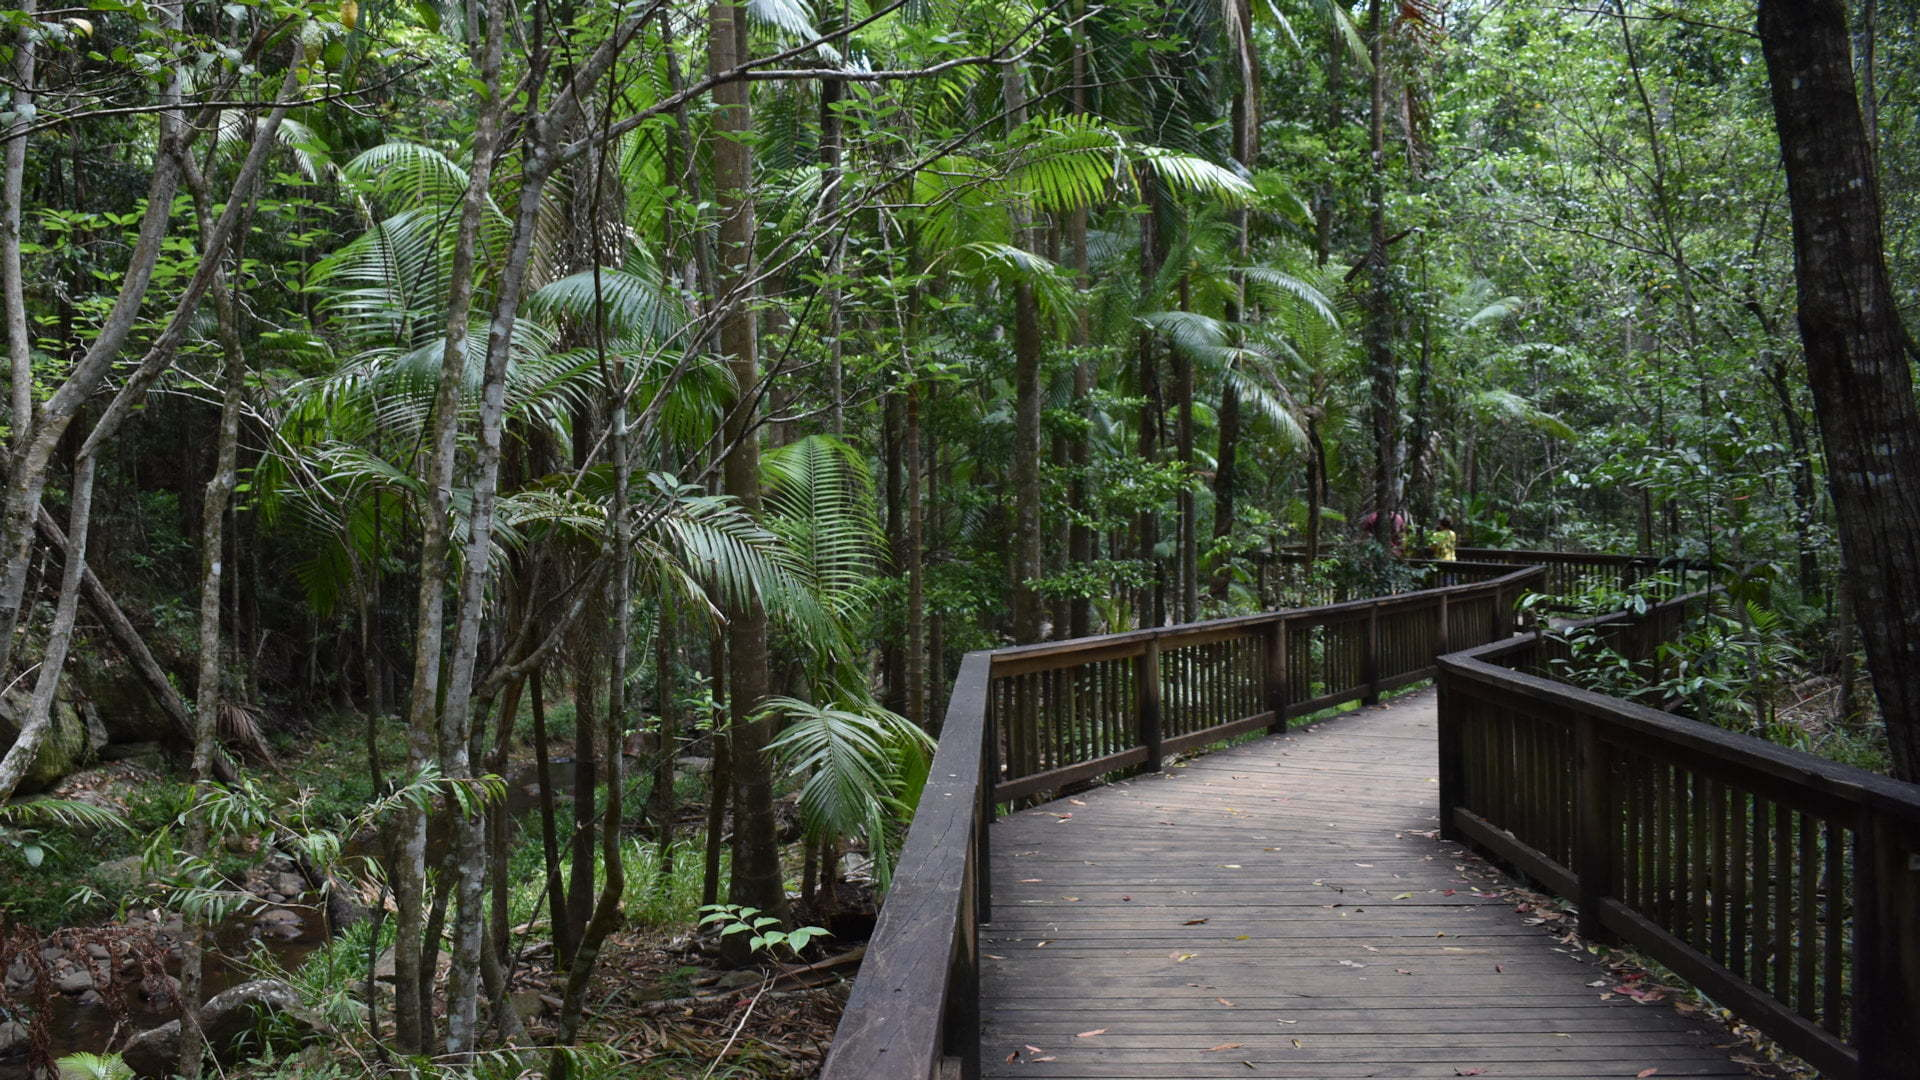 Boardwalk through a rainforest, at Buderim Forest Park along Martins Creek